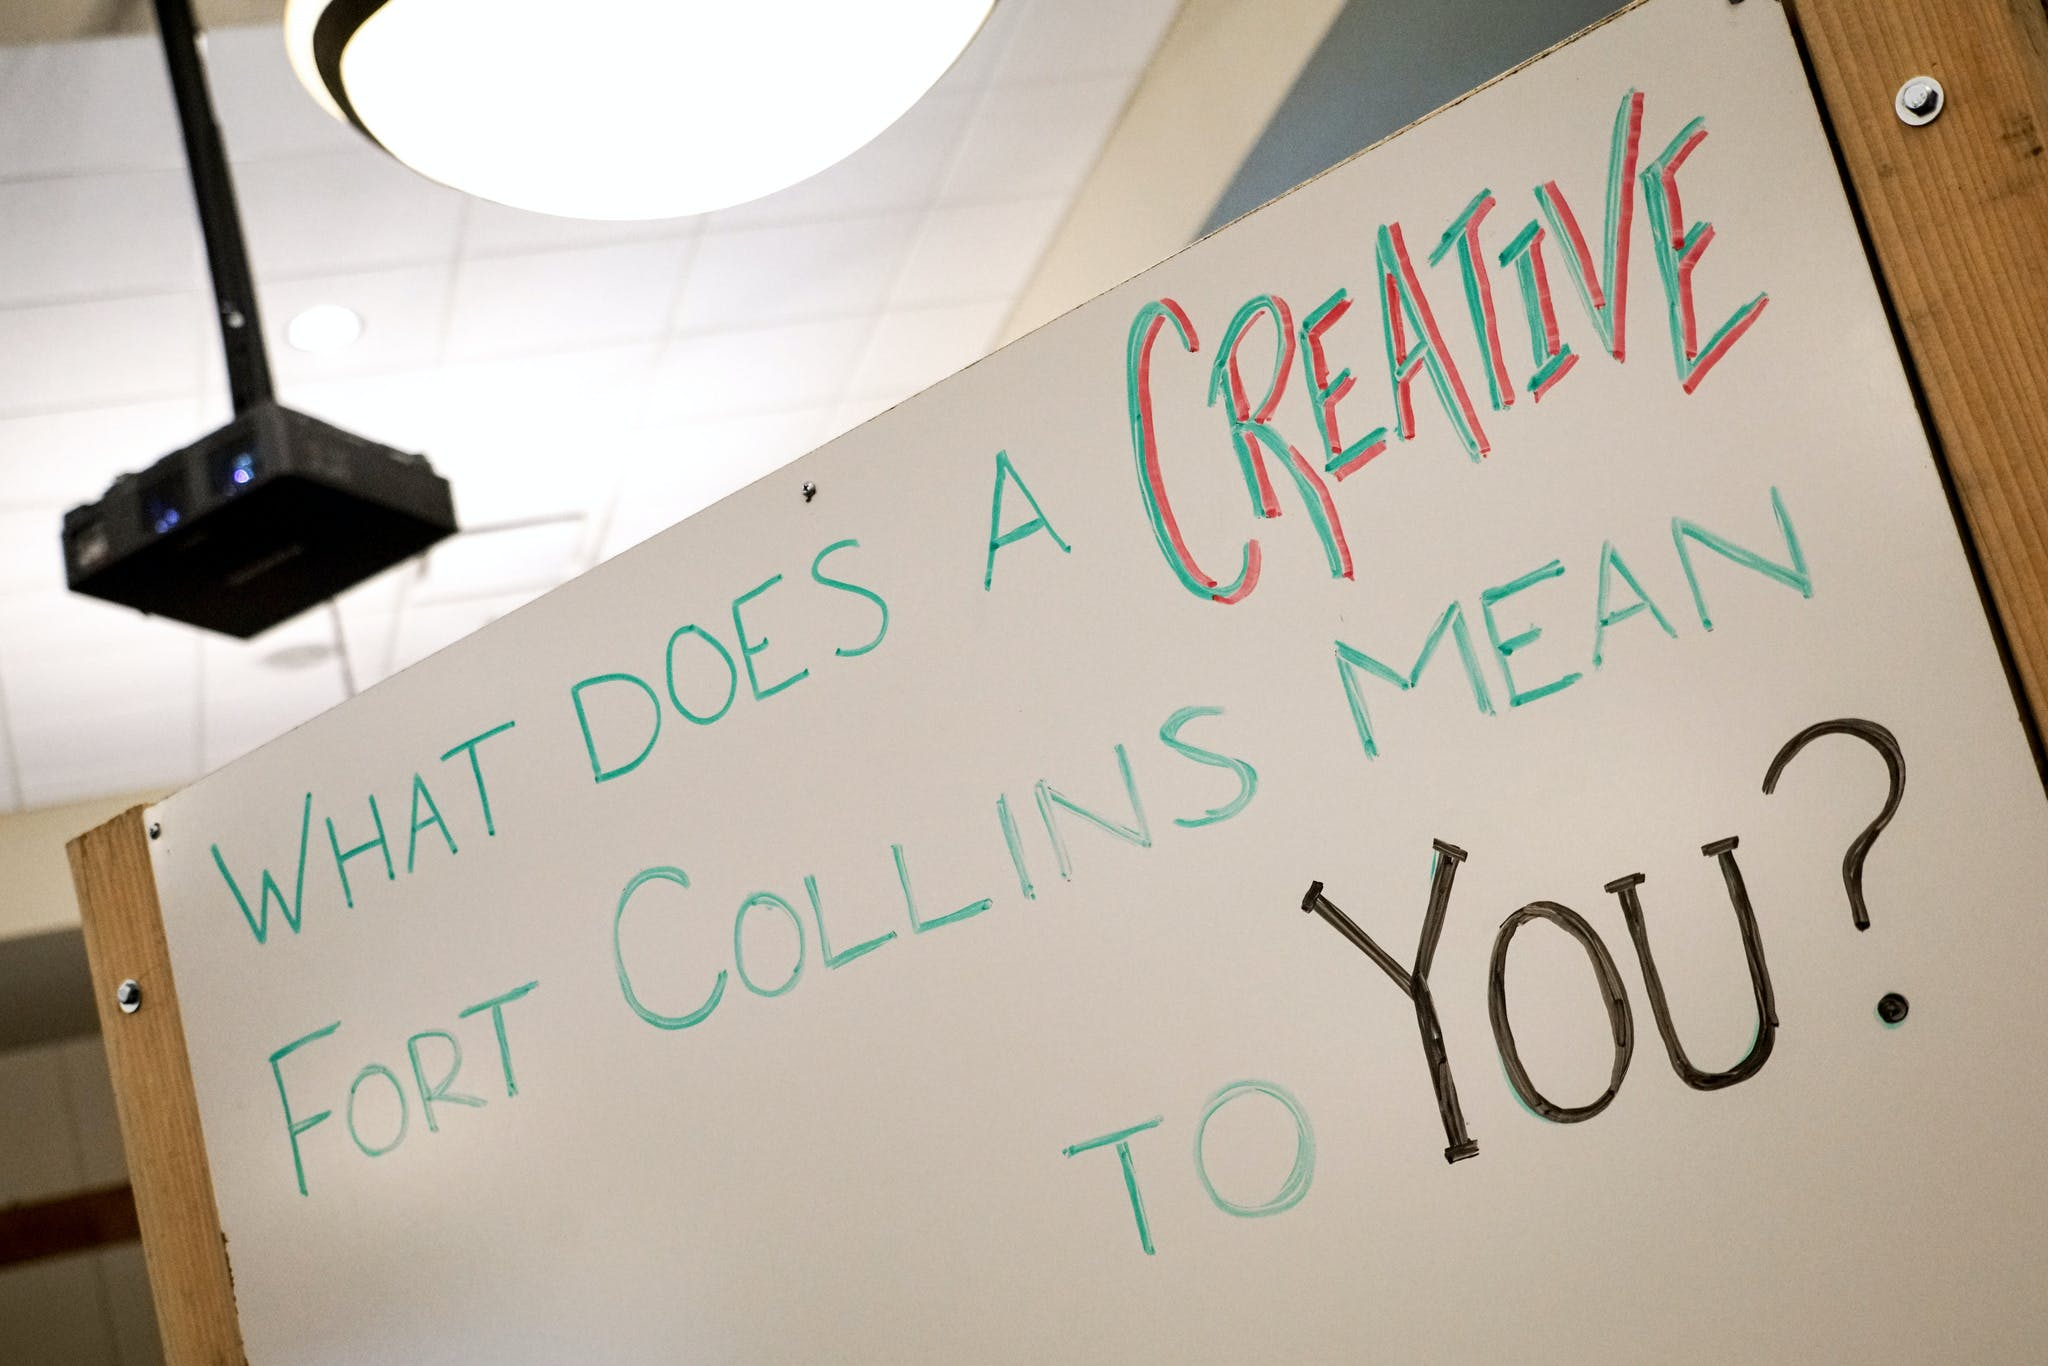 What does a creative Fort Collins mean to you?